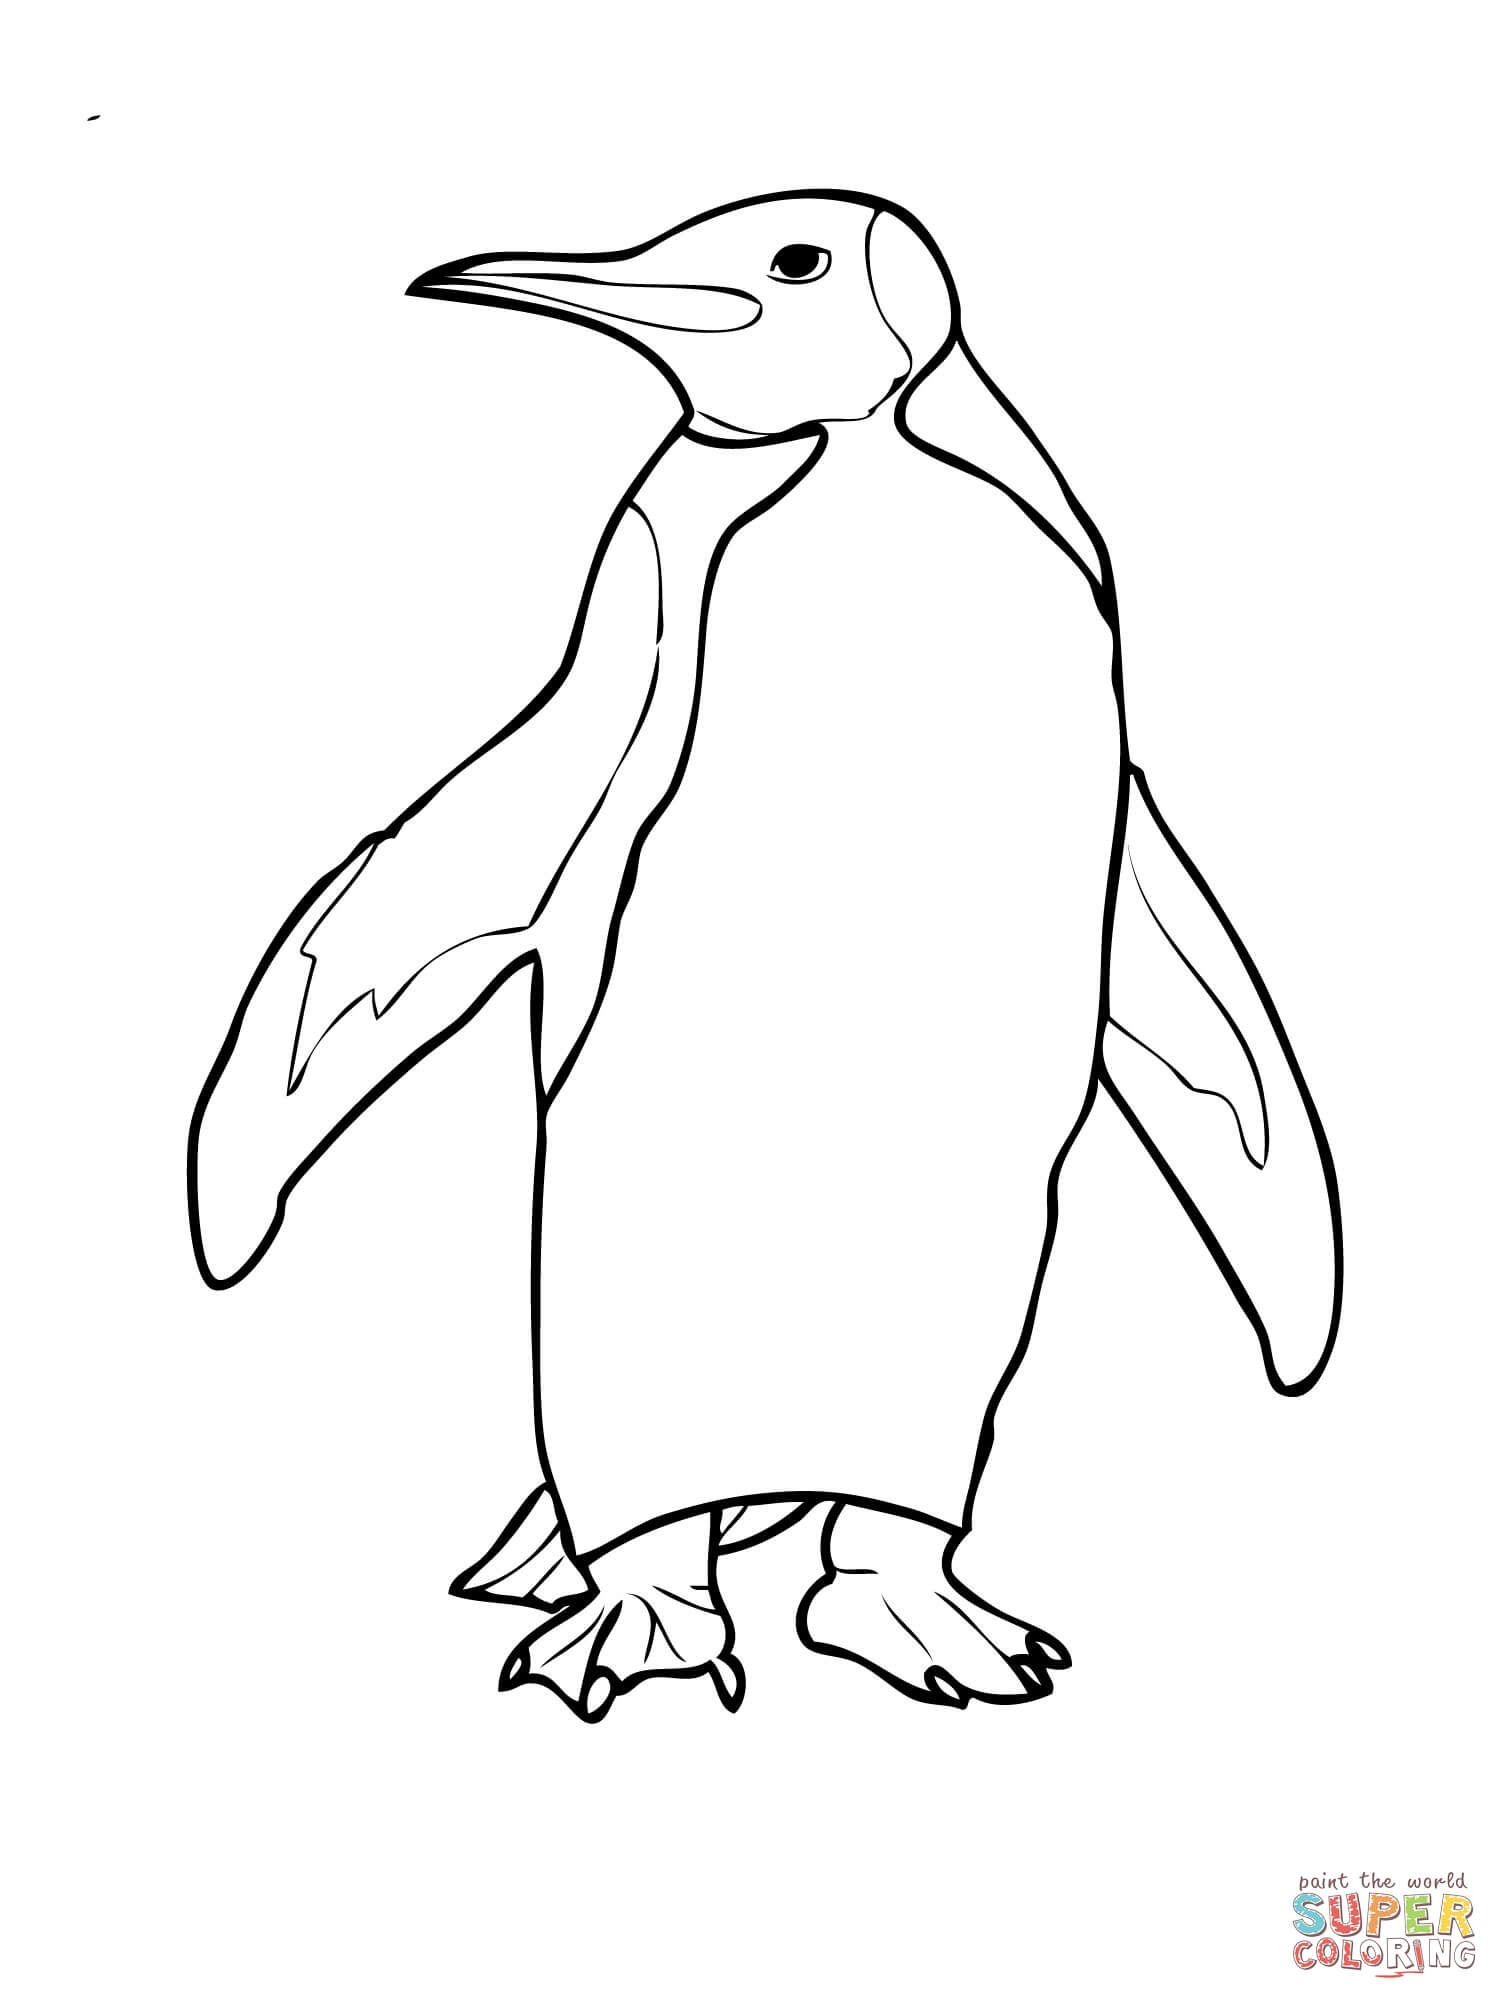 see best photos of penguin line art inspiring penguin line art template images black and white christmas penguin penguin line drawing free vector clip art